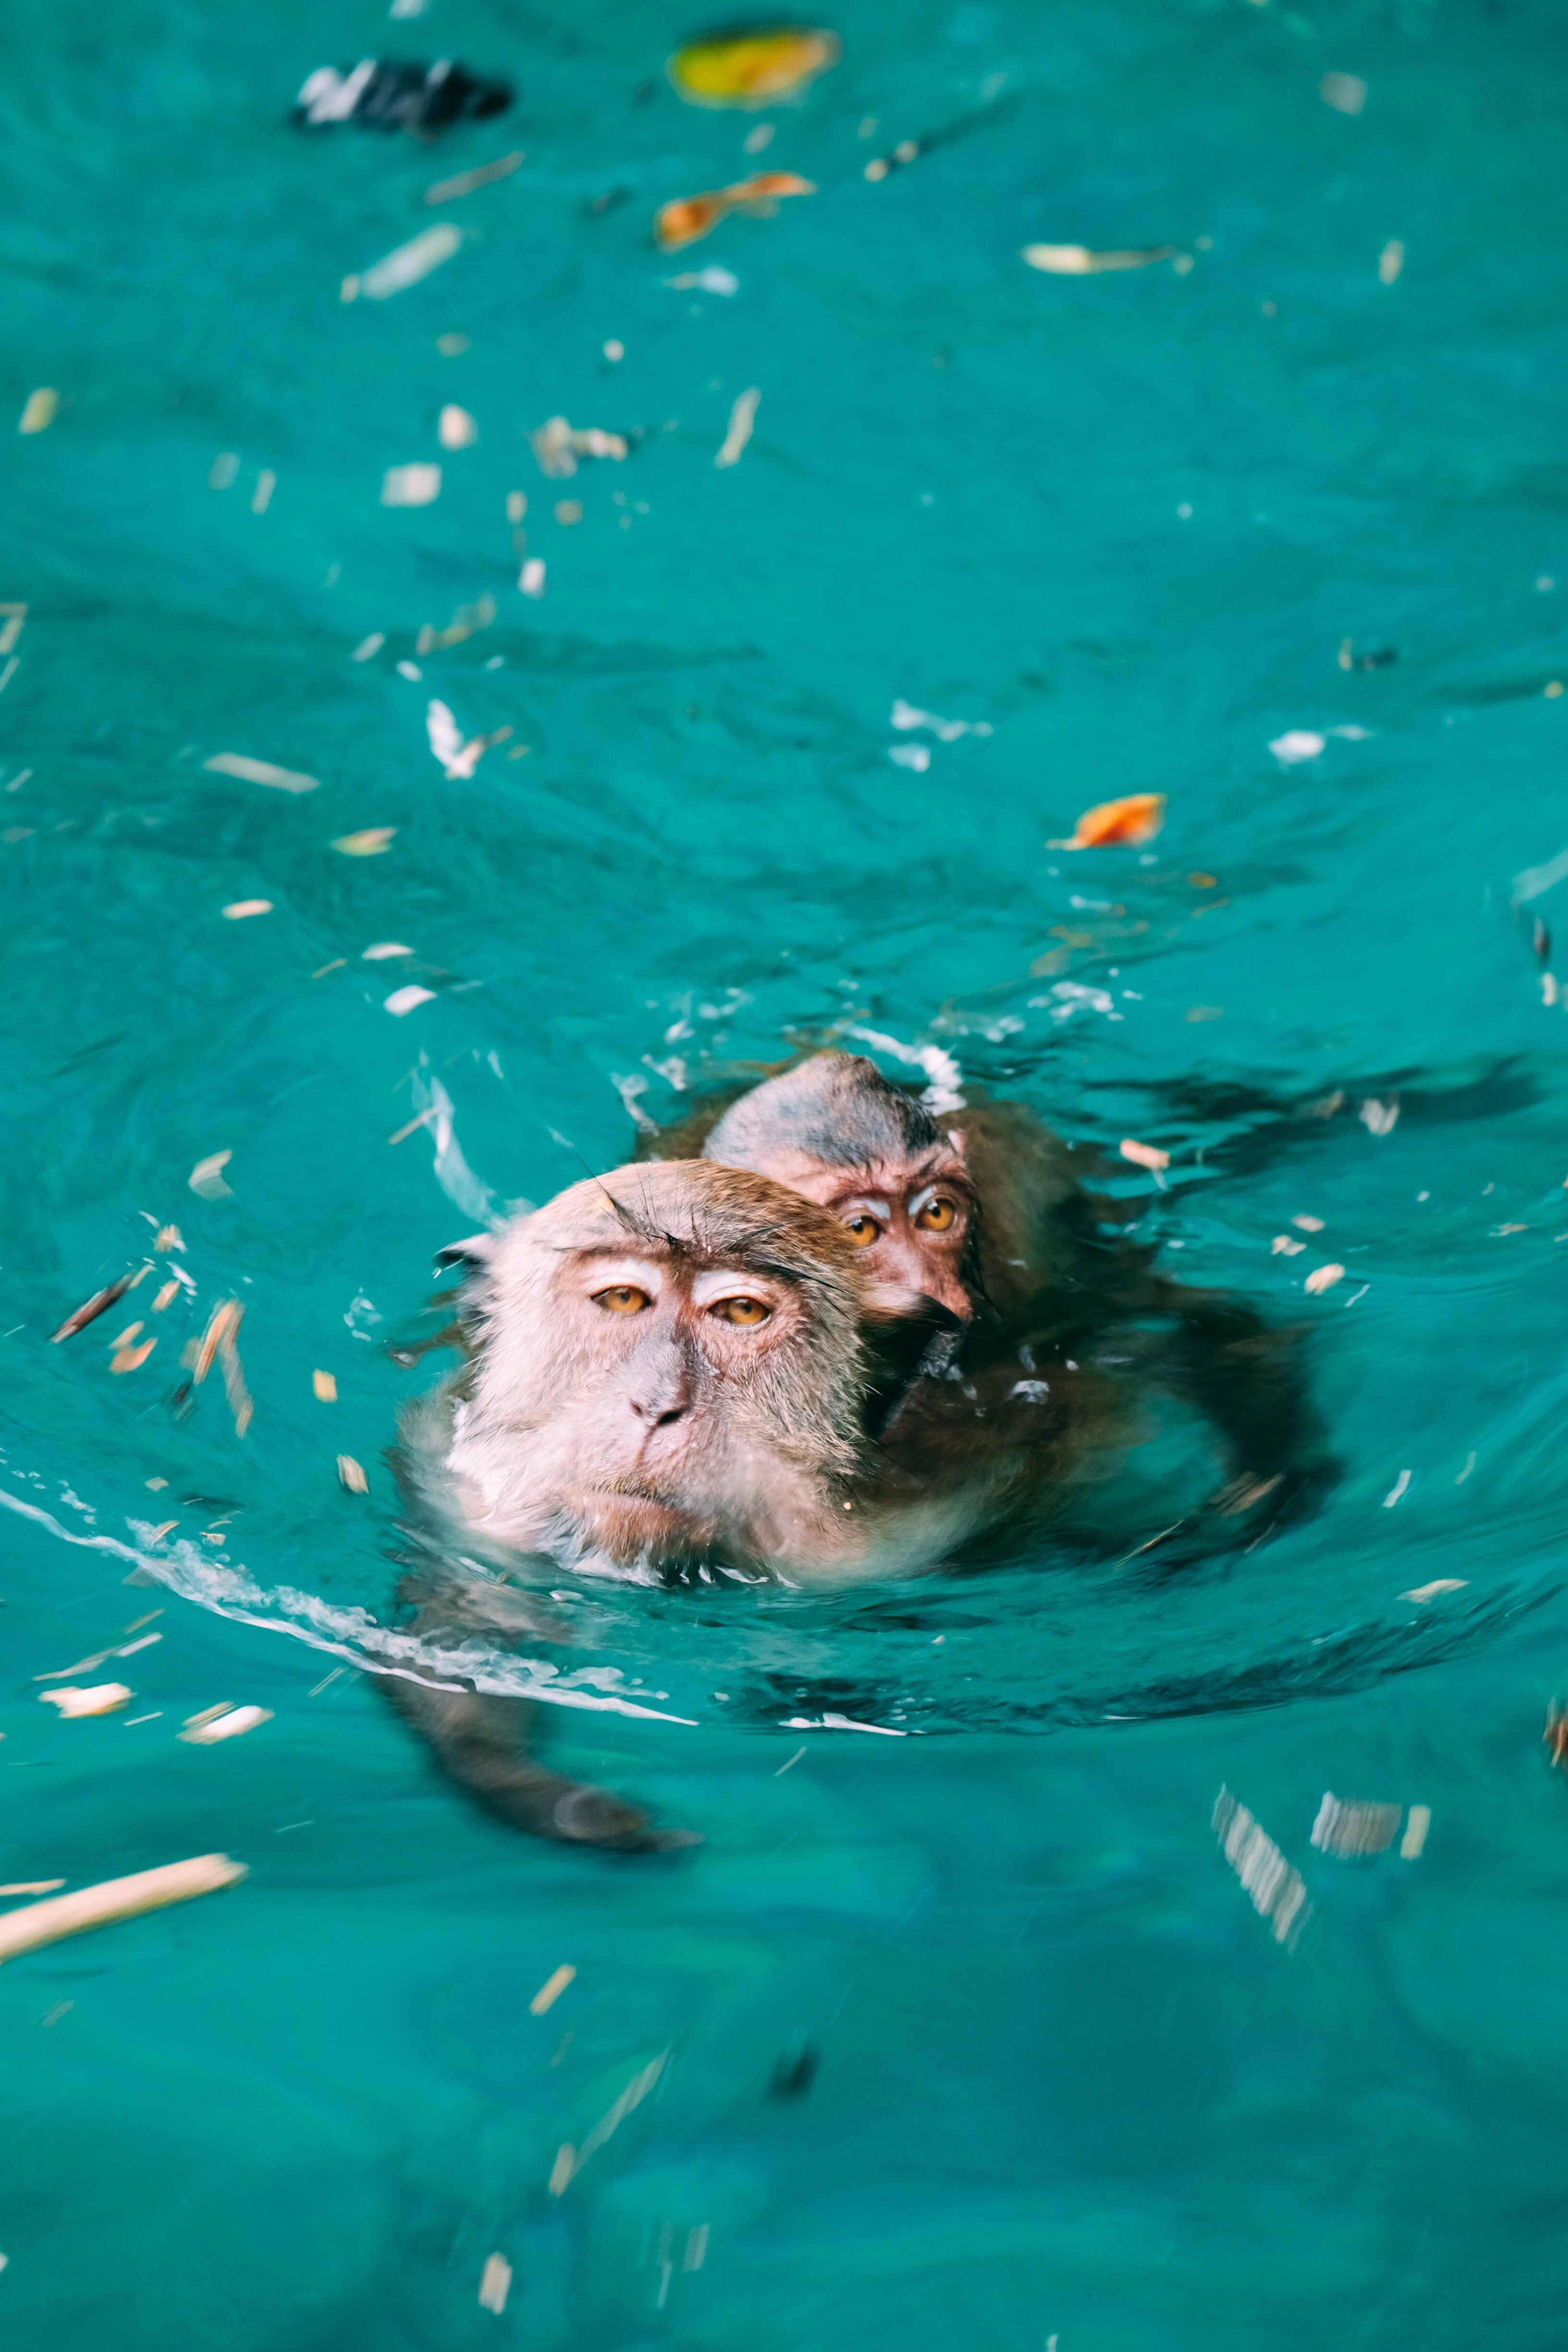 two monkeys swimming in water